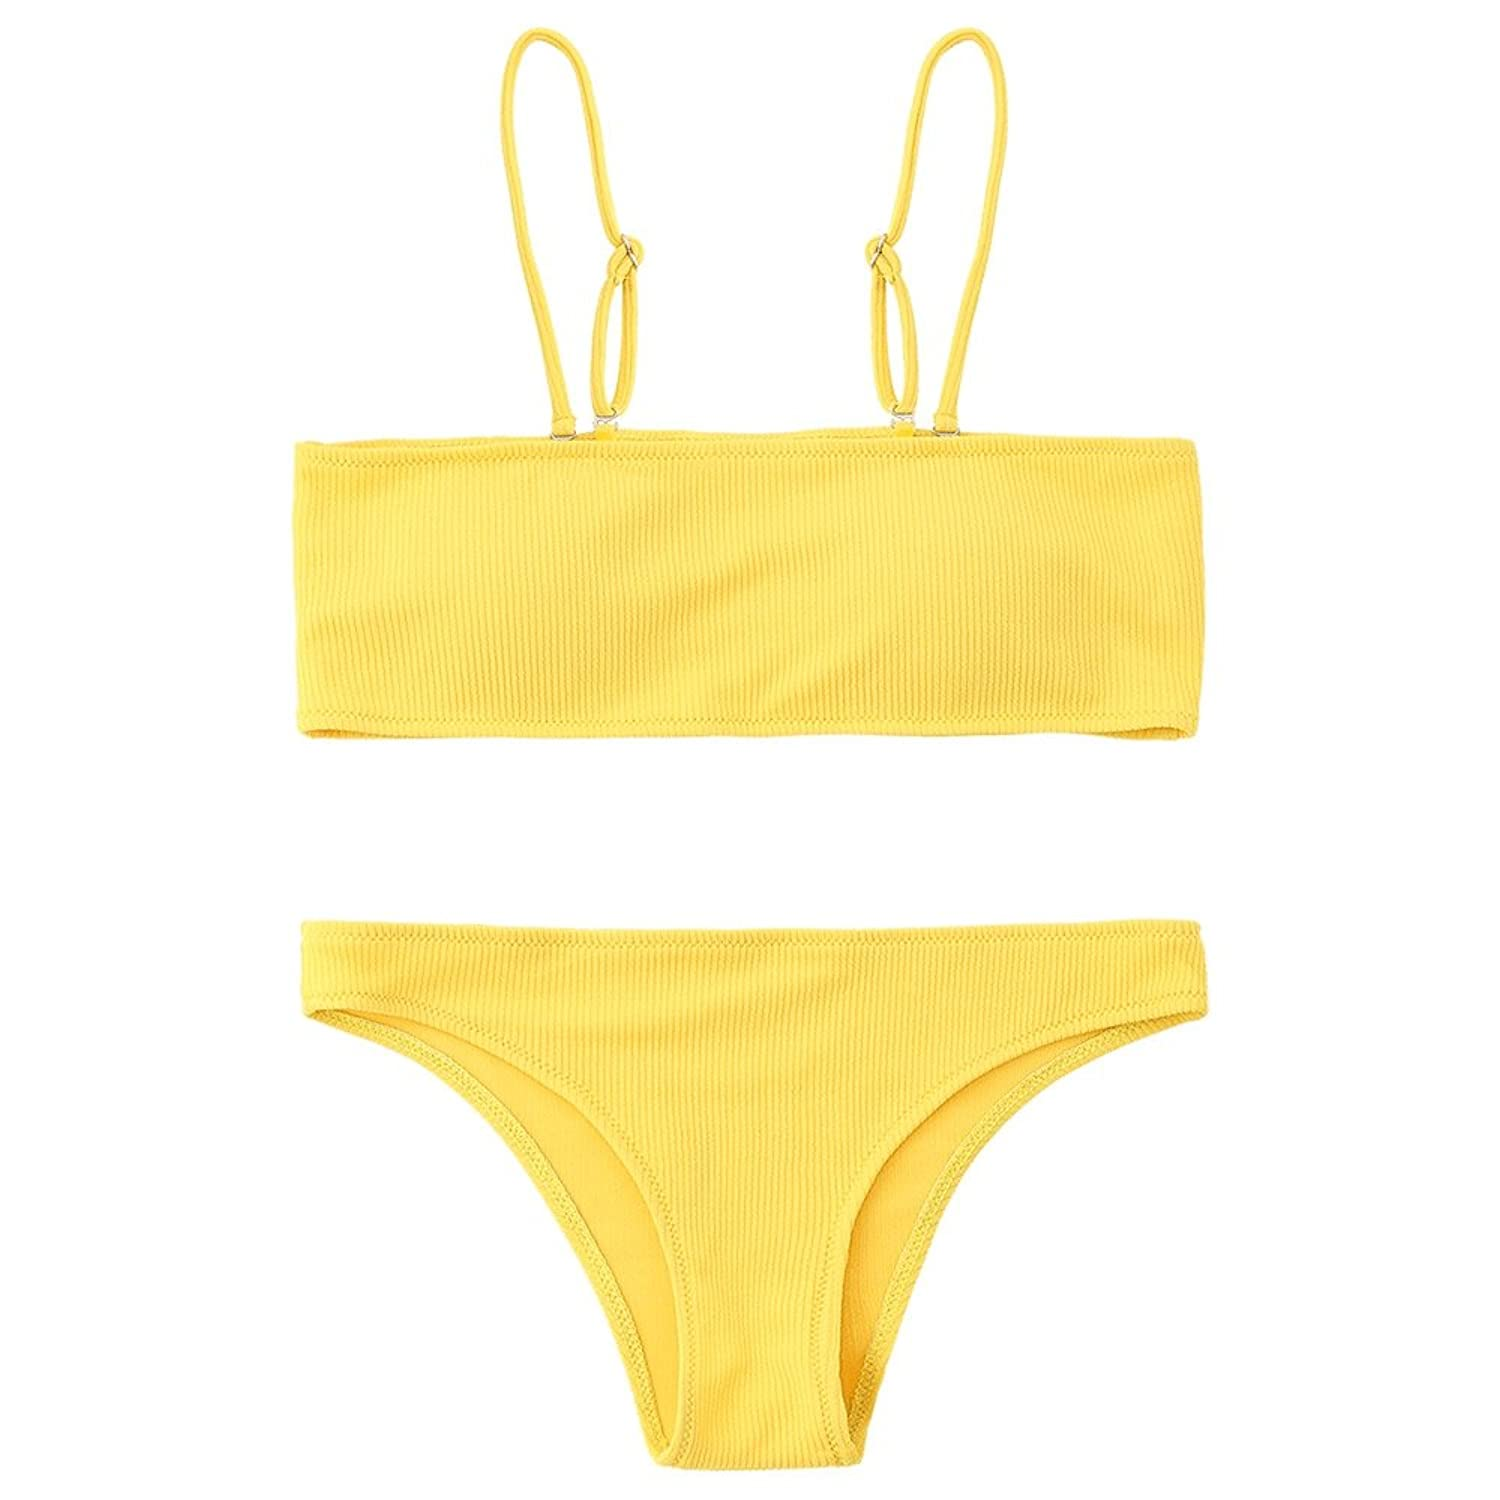 ZAFUL Women's Two Piece Cami Strap Solid Color Bandeau Ribbed Swimsuit Bikini Set